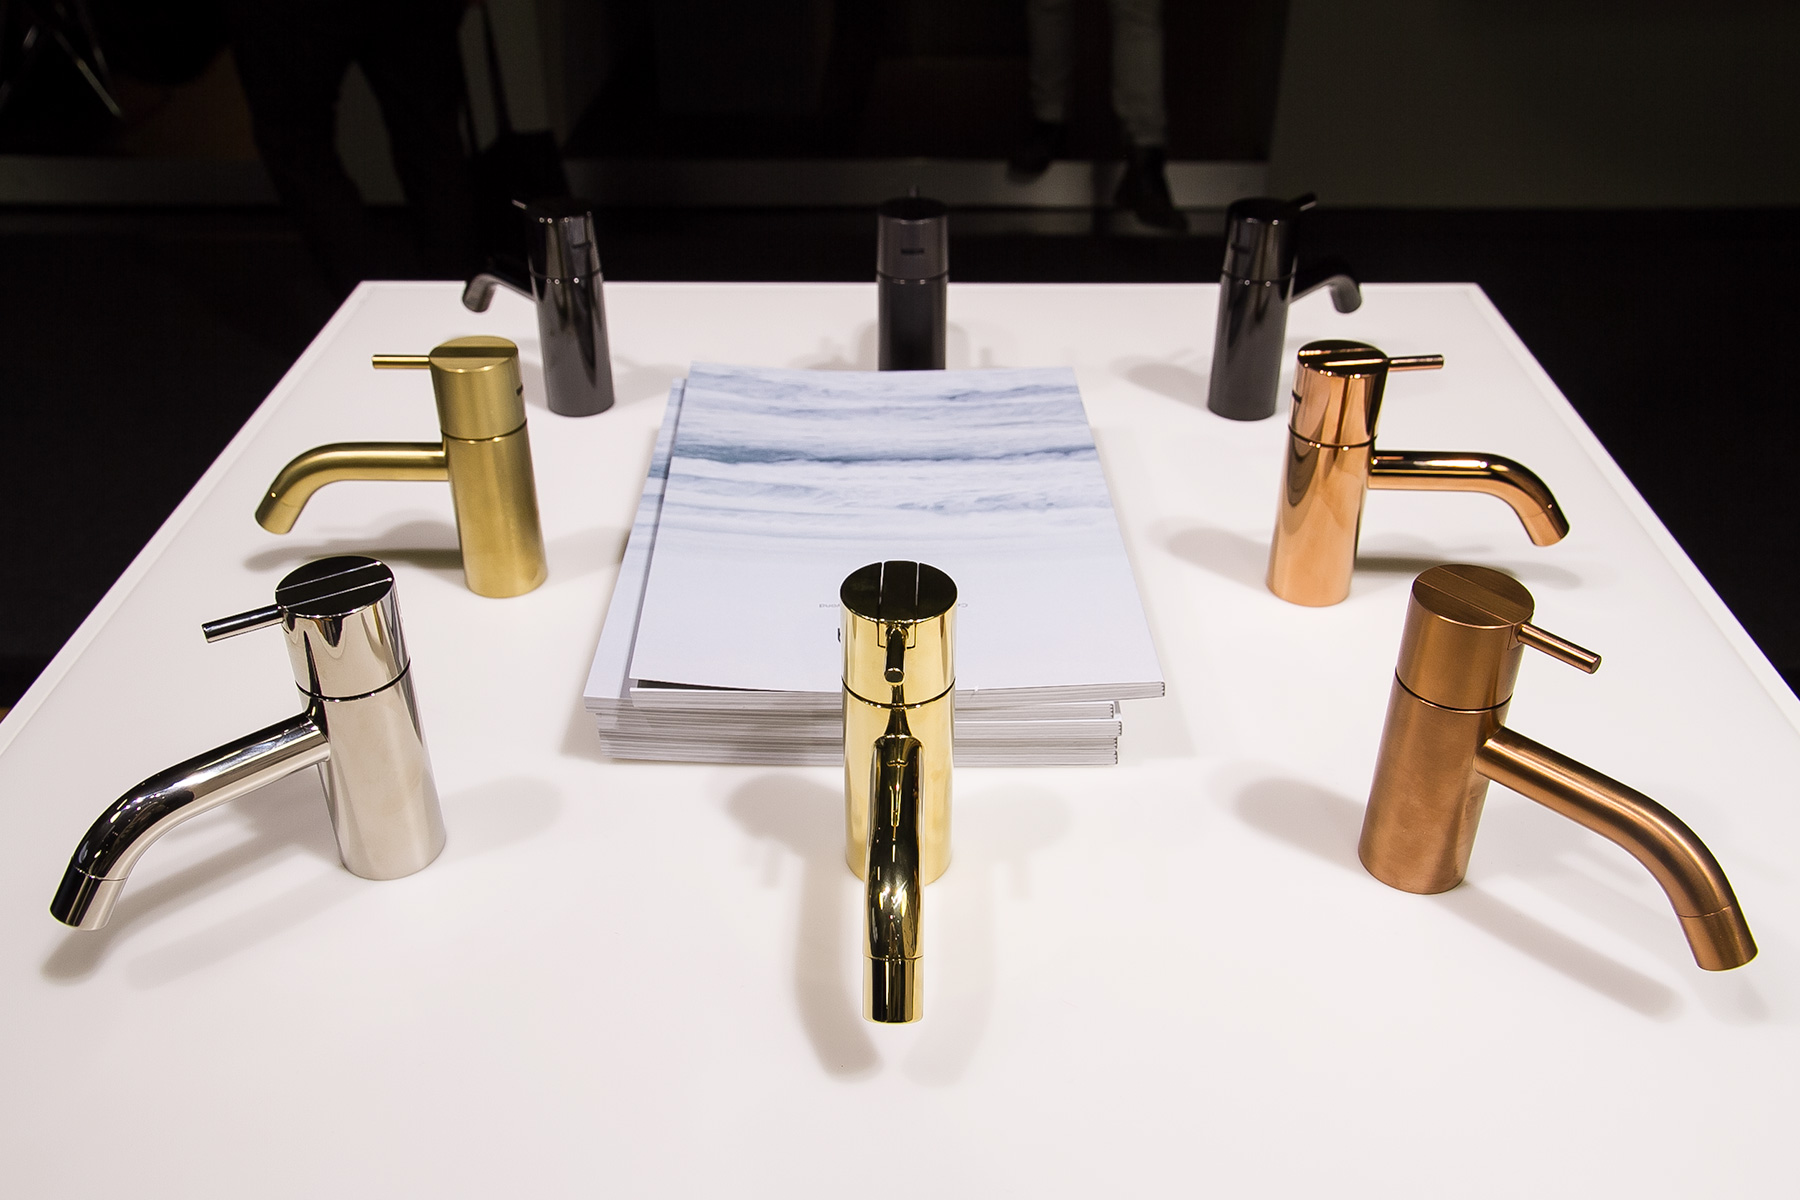 Arne Jacobsen bathroom fittings, exhibitor Vola, imm cologne trade fair 2018, blog post lifetime-pieces.com